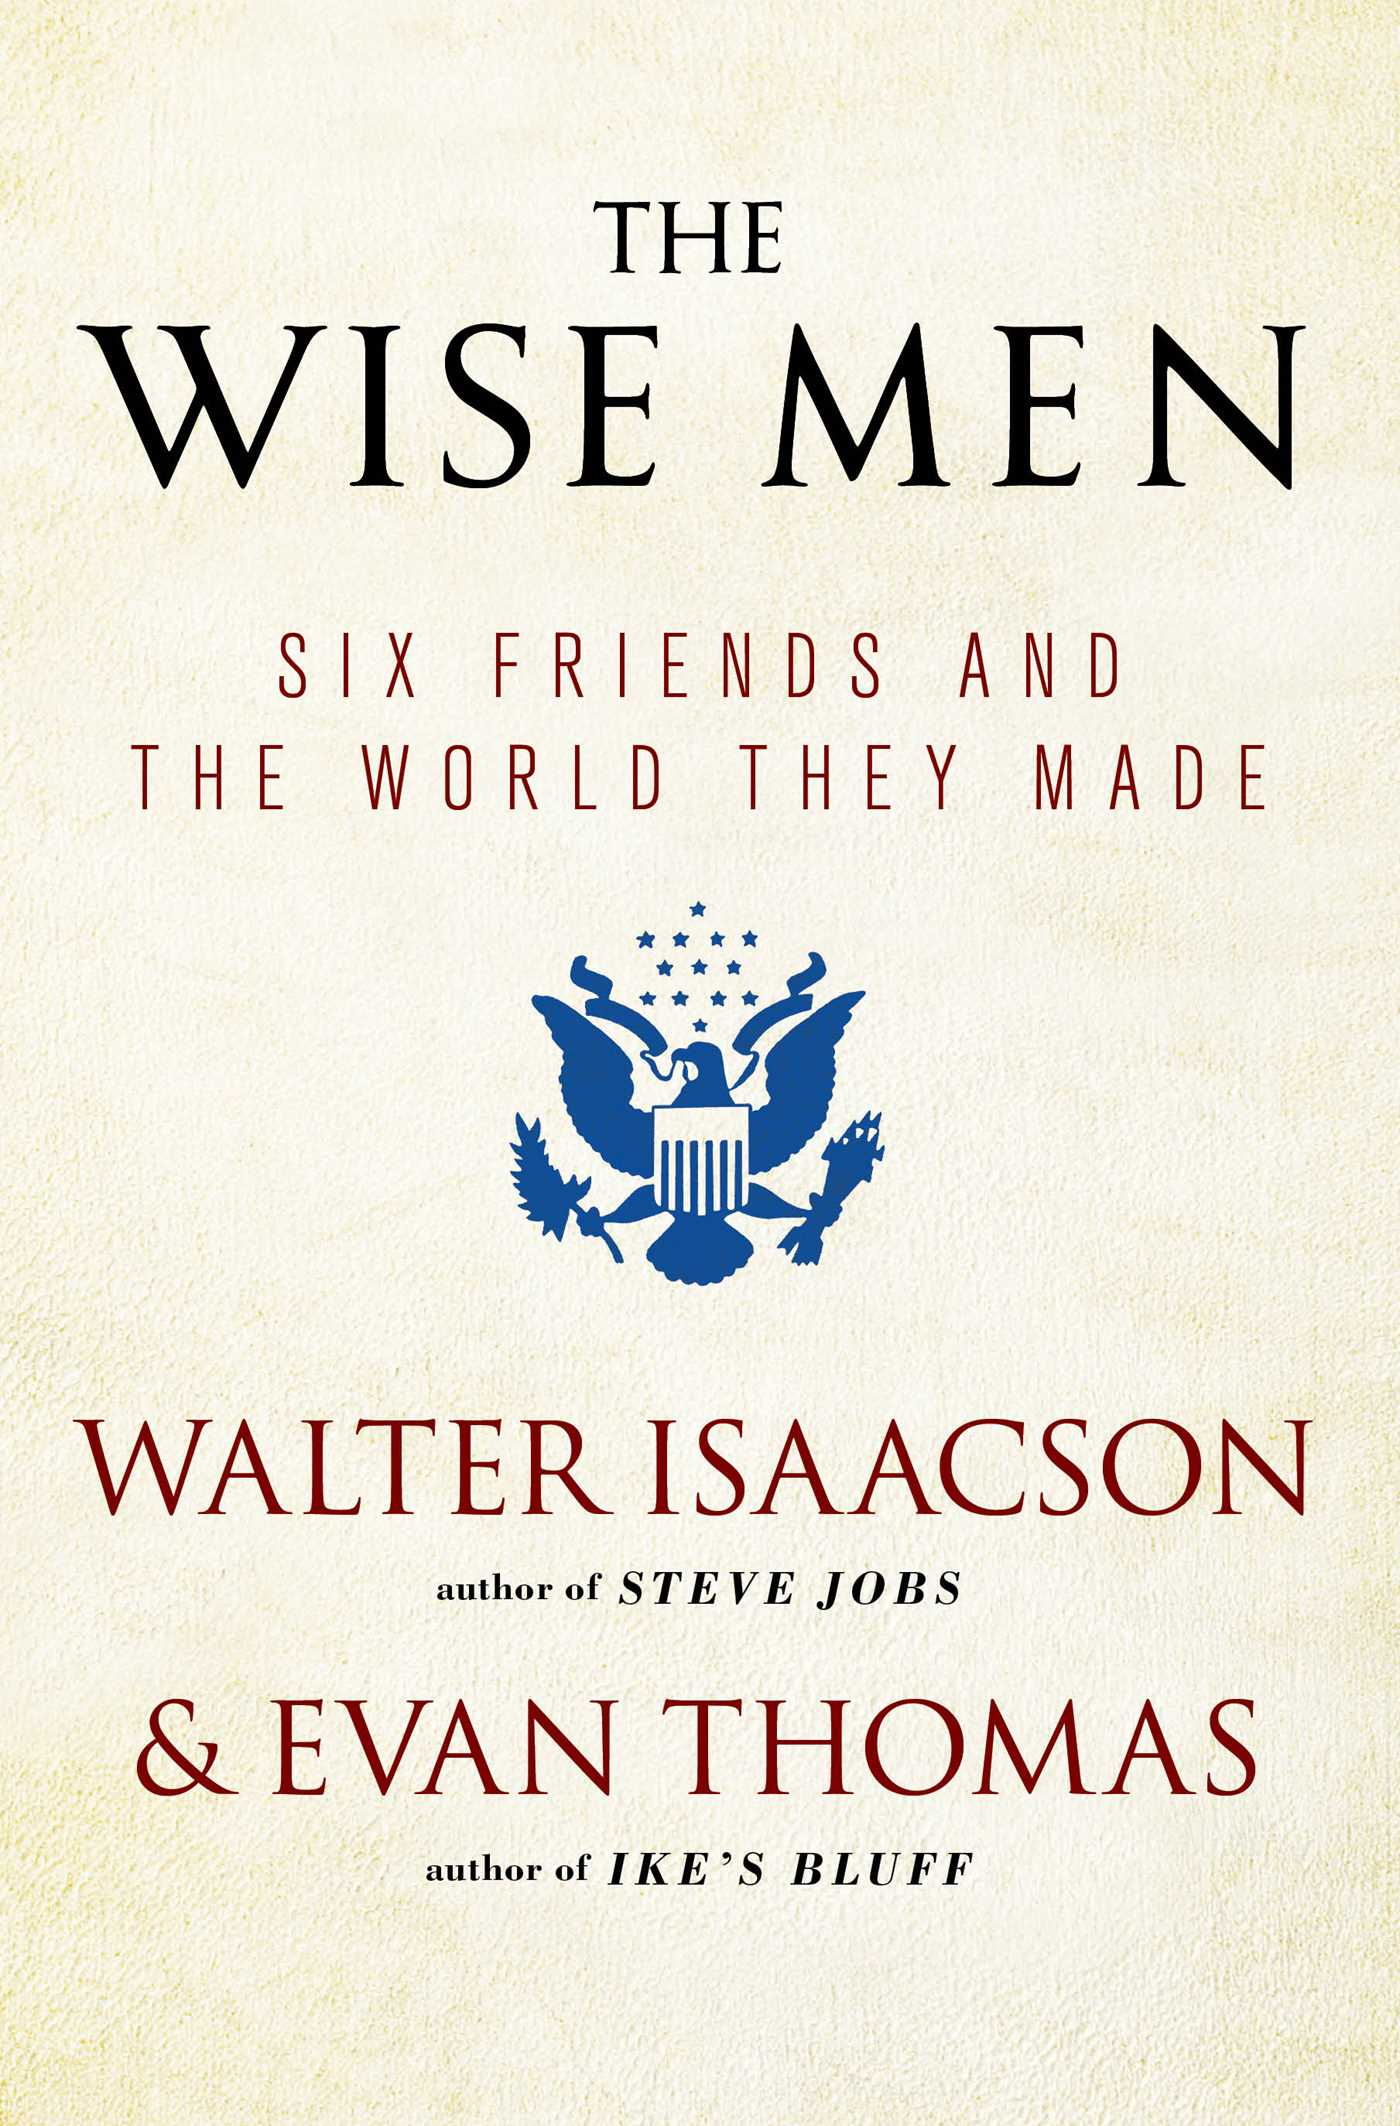 Wise-men-9781439126530_hr